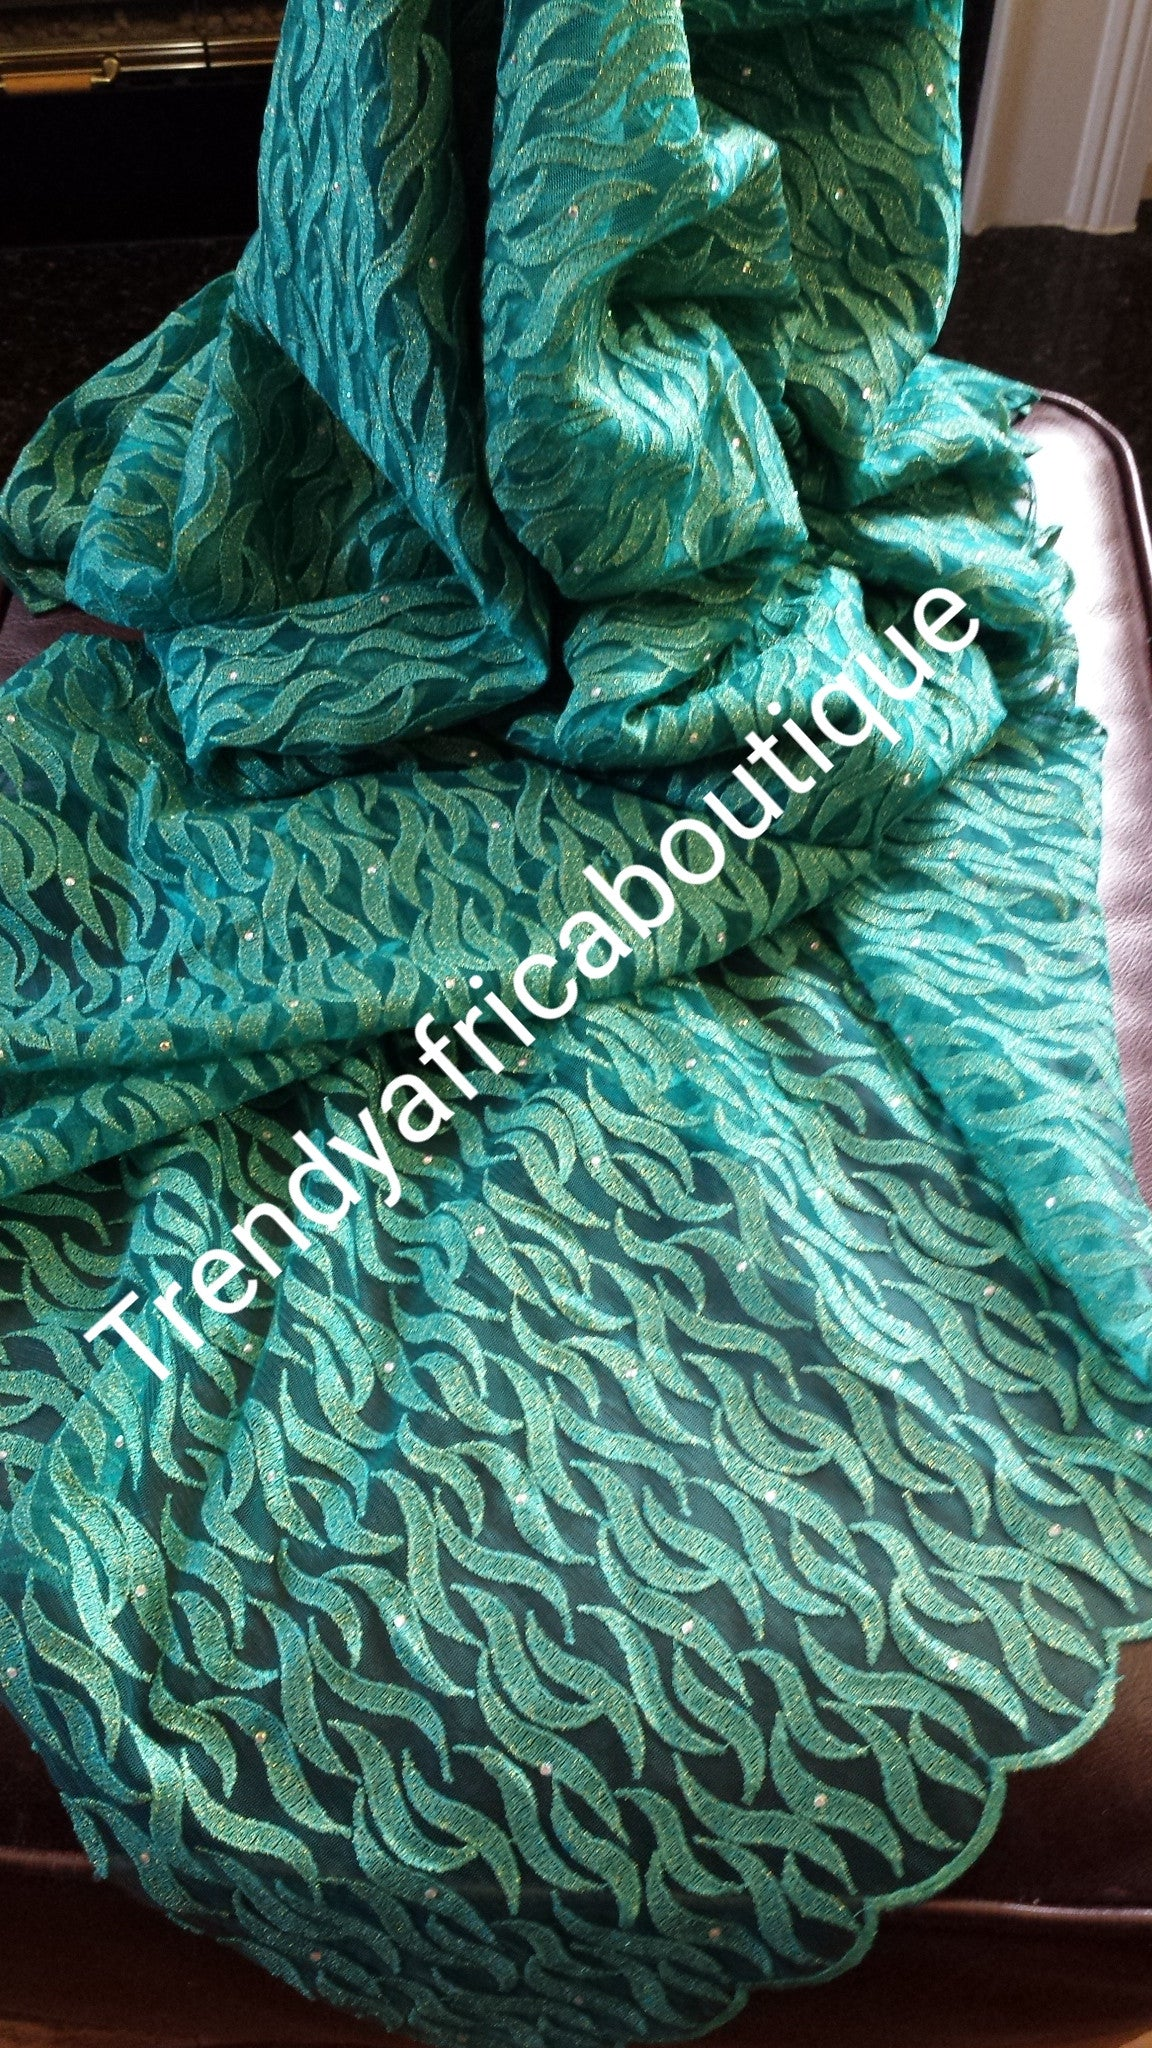 Special Offer: Green original African french lace fabric. Sold per 5yds. Price is for 5 yds